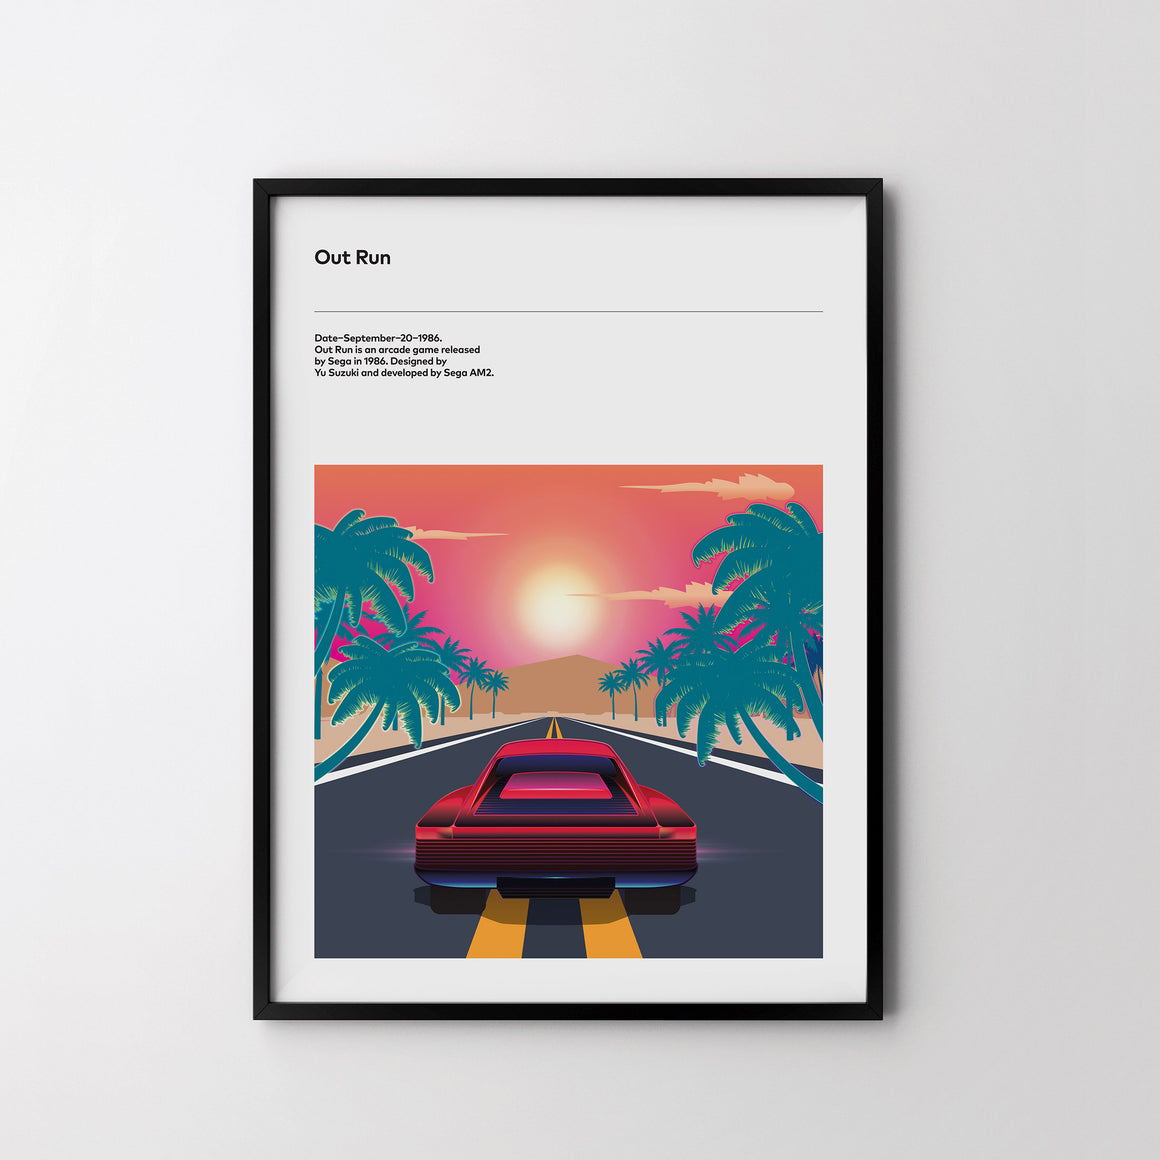 OUT RUN SEGA 1986 Retro Poster Art Print, Video Game, Minimal Poster - SOA State of Art